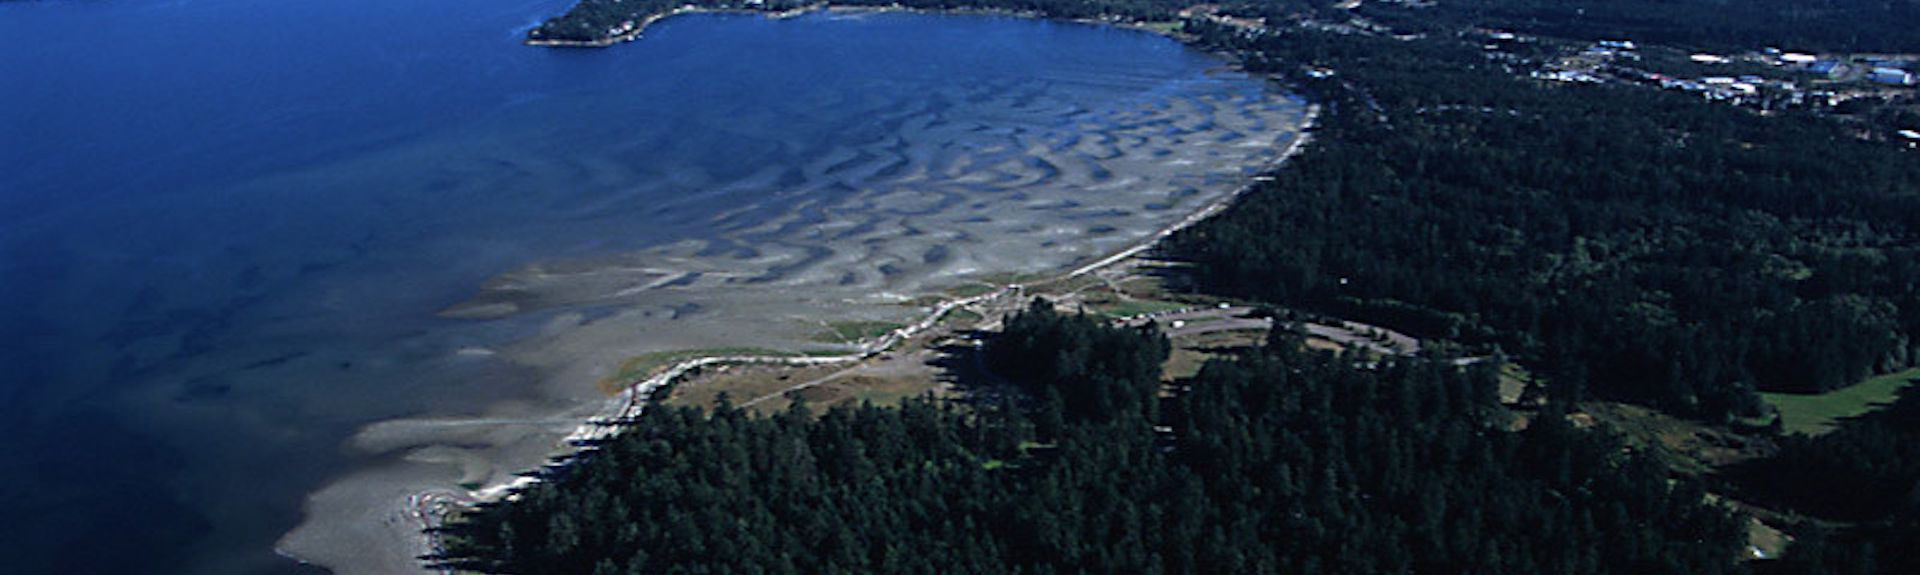 Pipers Lagoon Park, Nanaimo, British Columbia, Canada